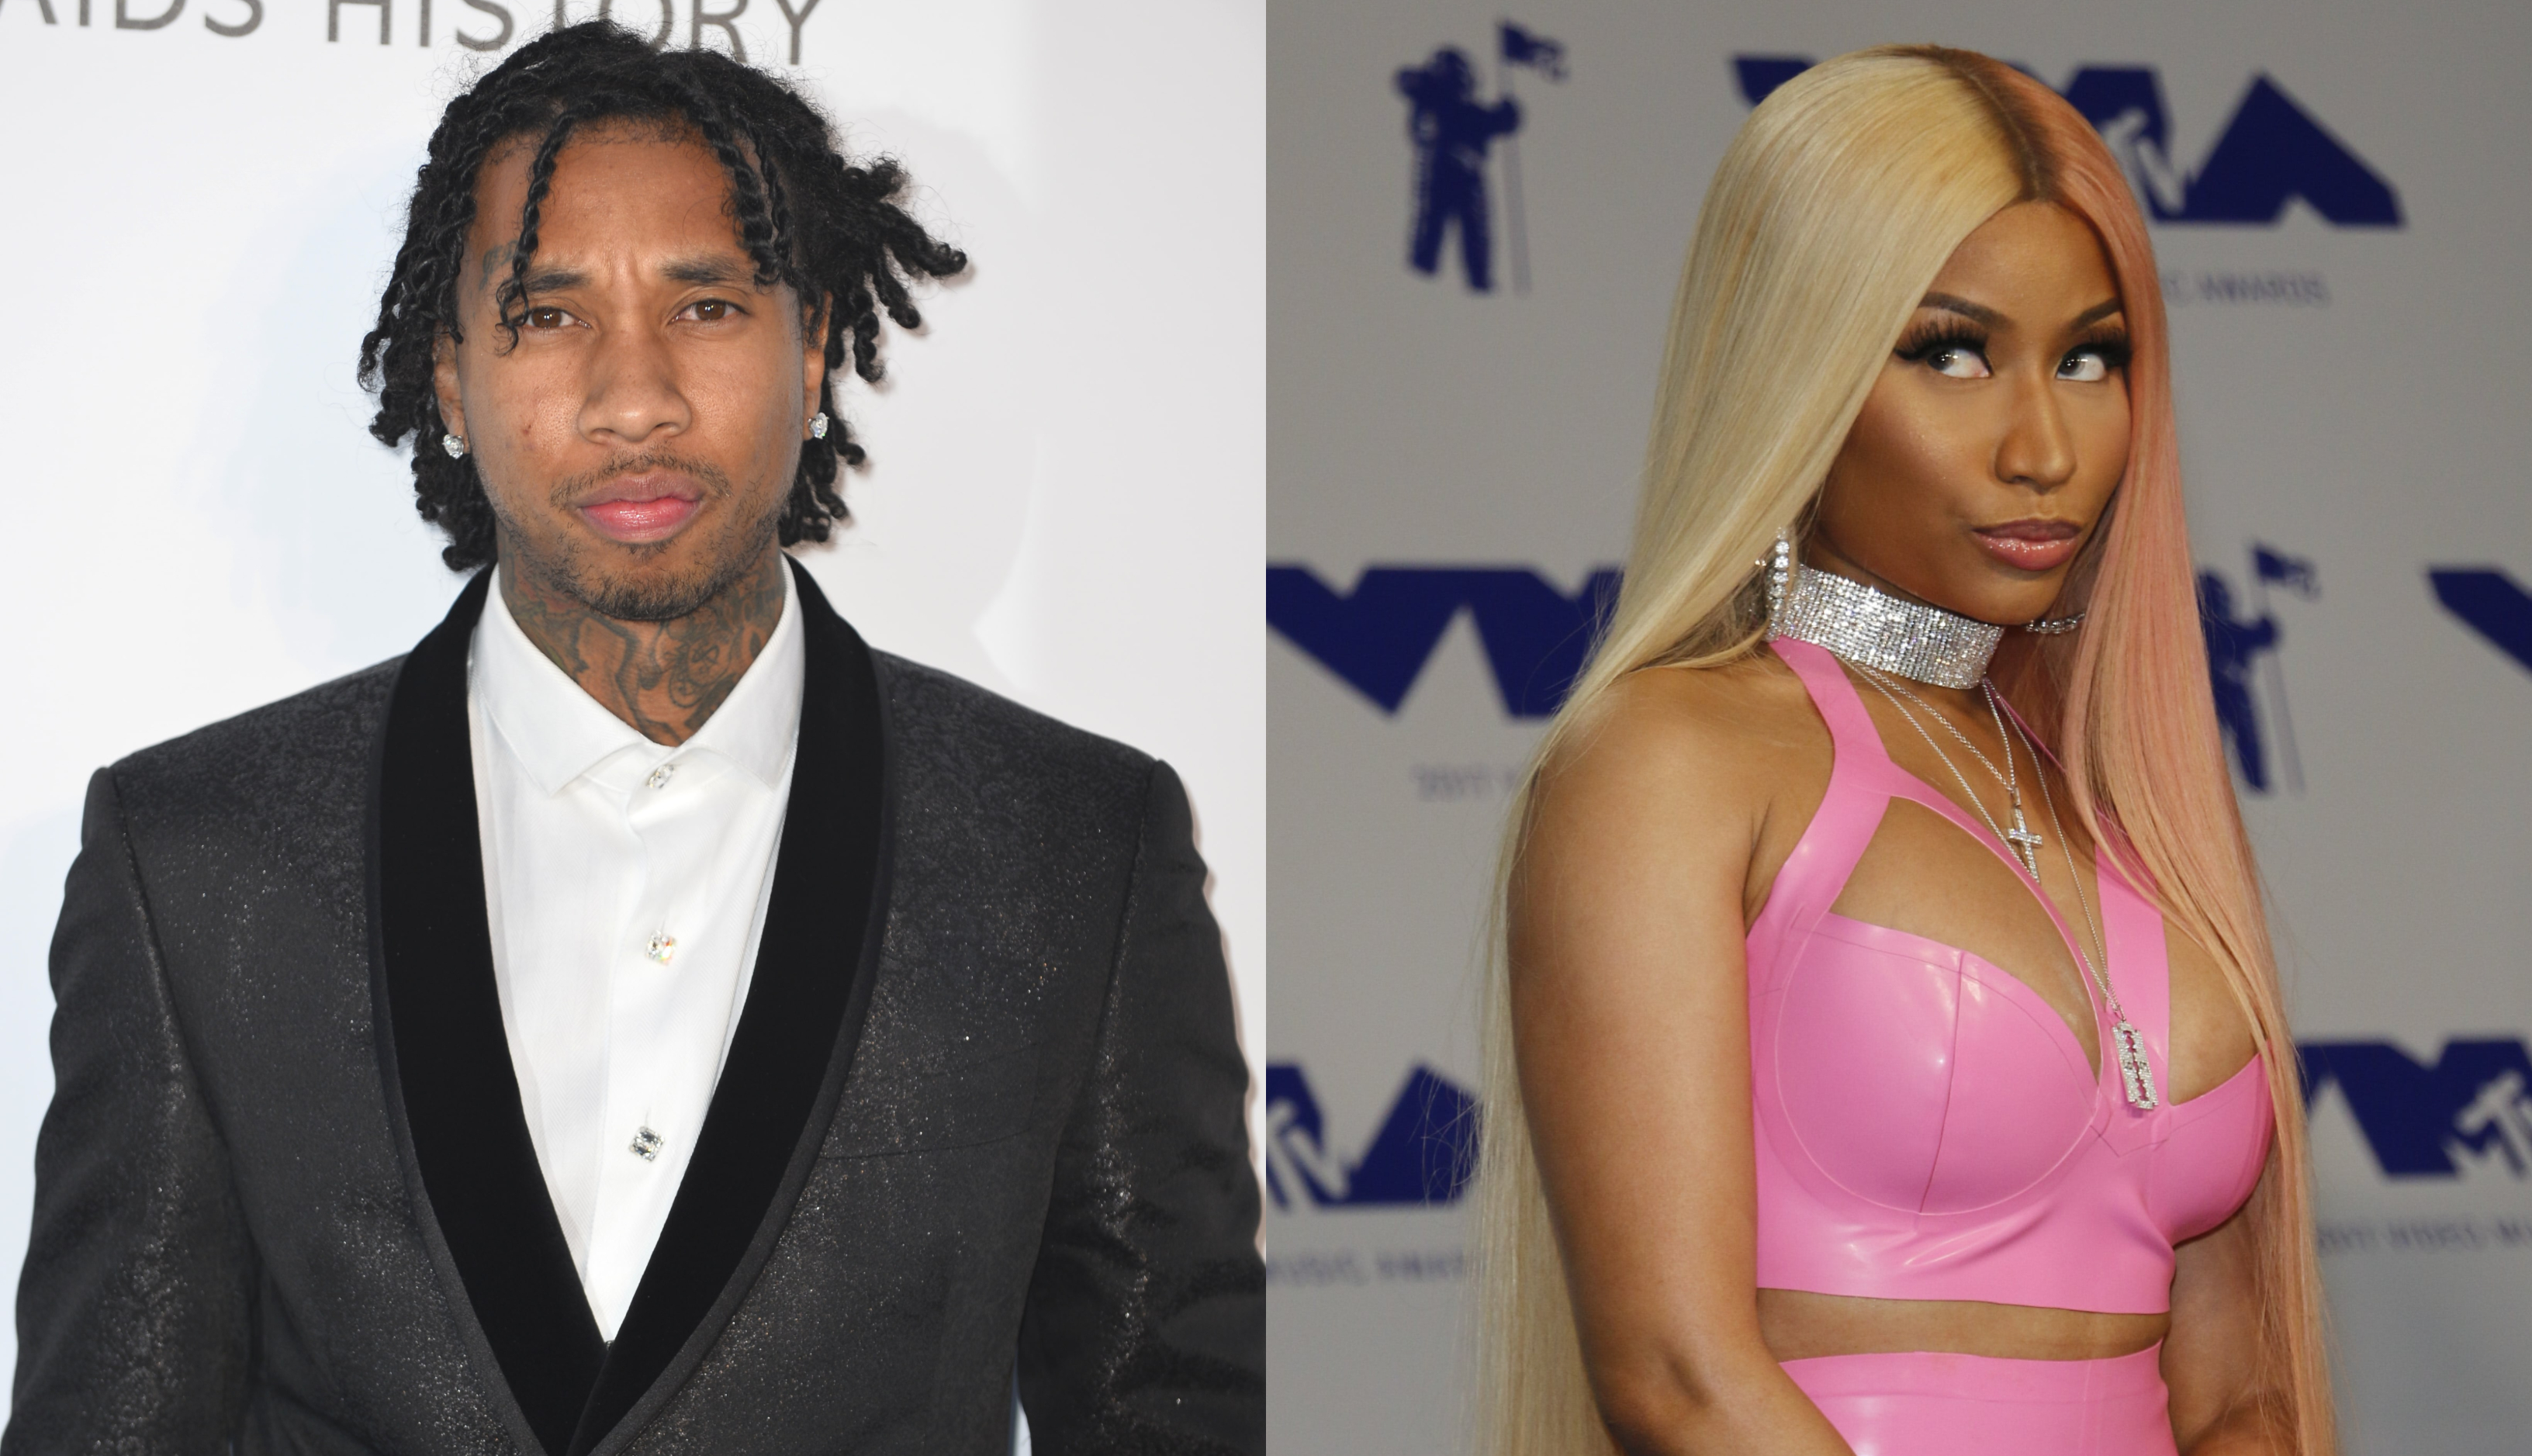 Nicki Minaj accidentally exposed Tyga's secret hair transplant during Twitter feud with ex Safaree Samuels. (Photo: WENN)